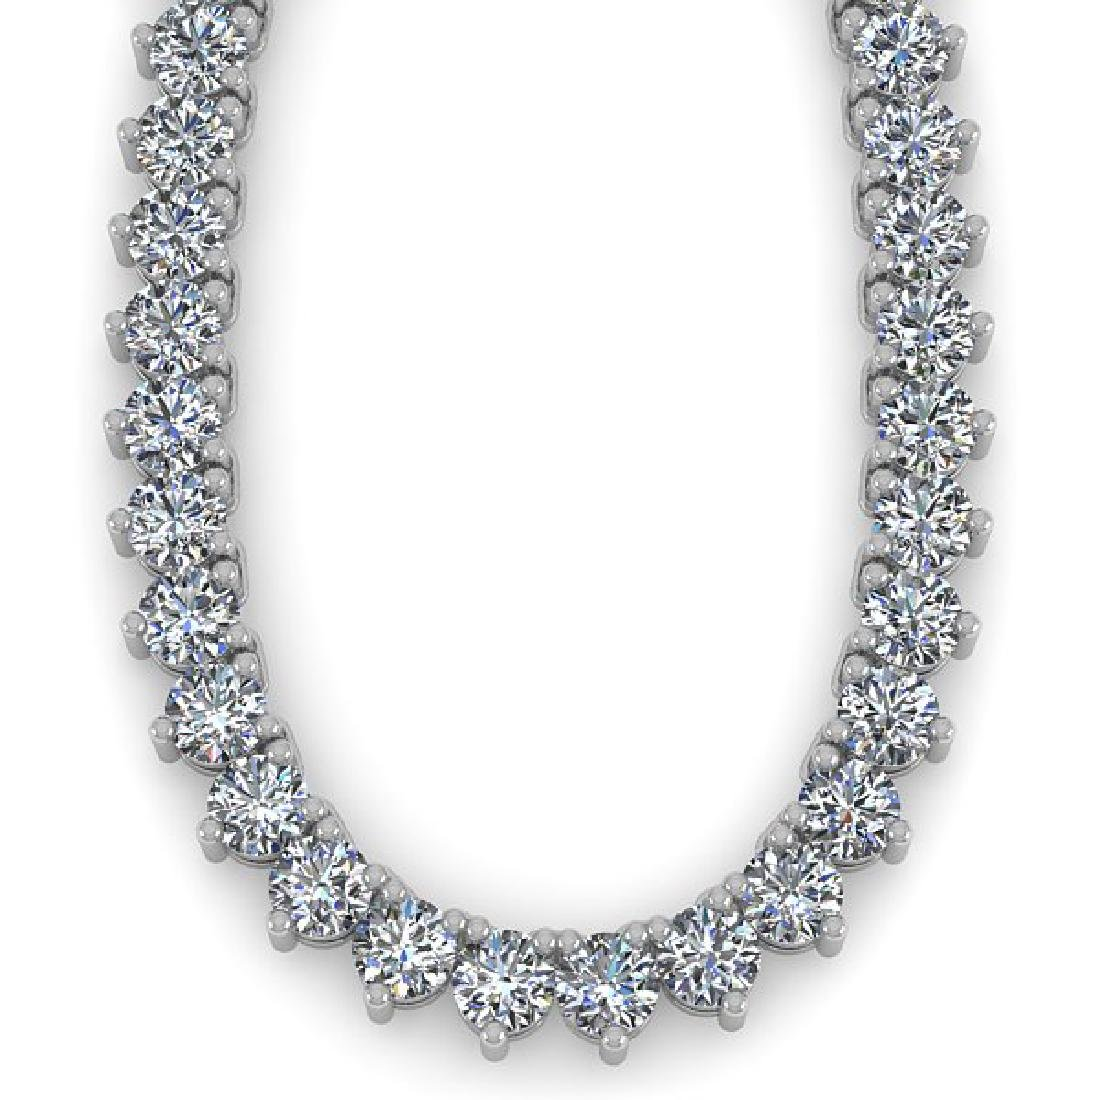 48 CTW Solitaire SI Diamond Necklace 14K White Gold - 2